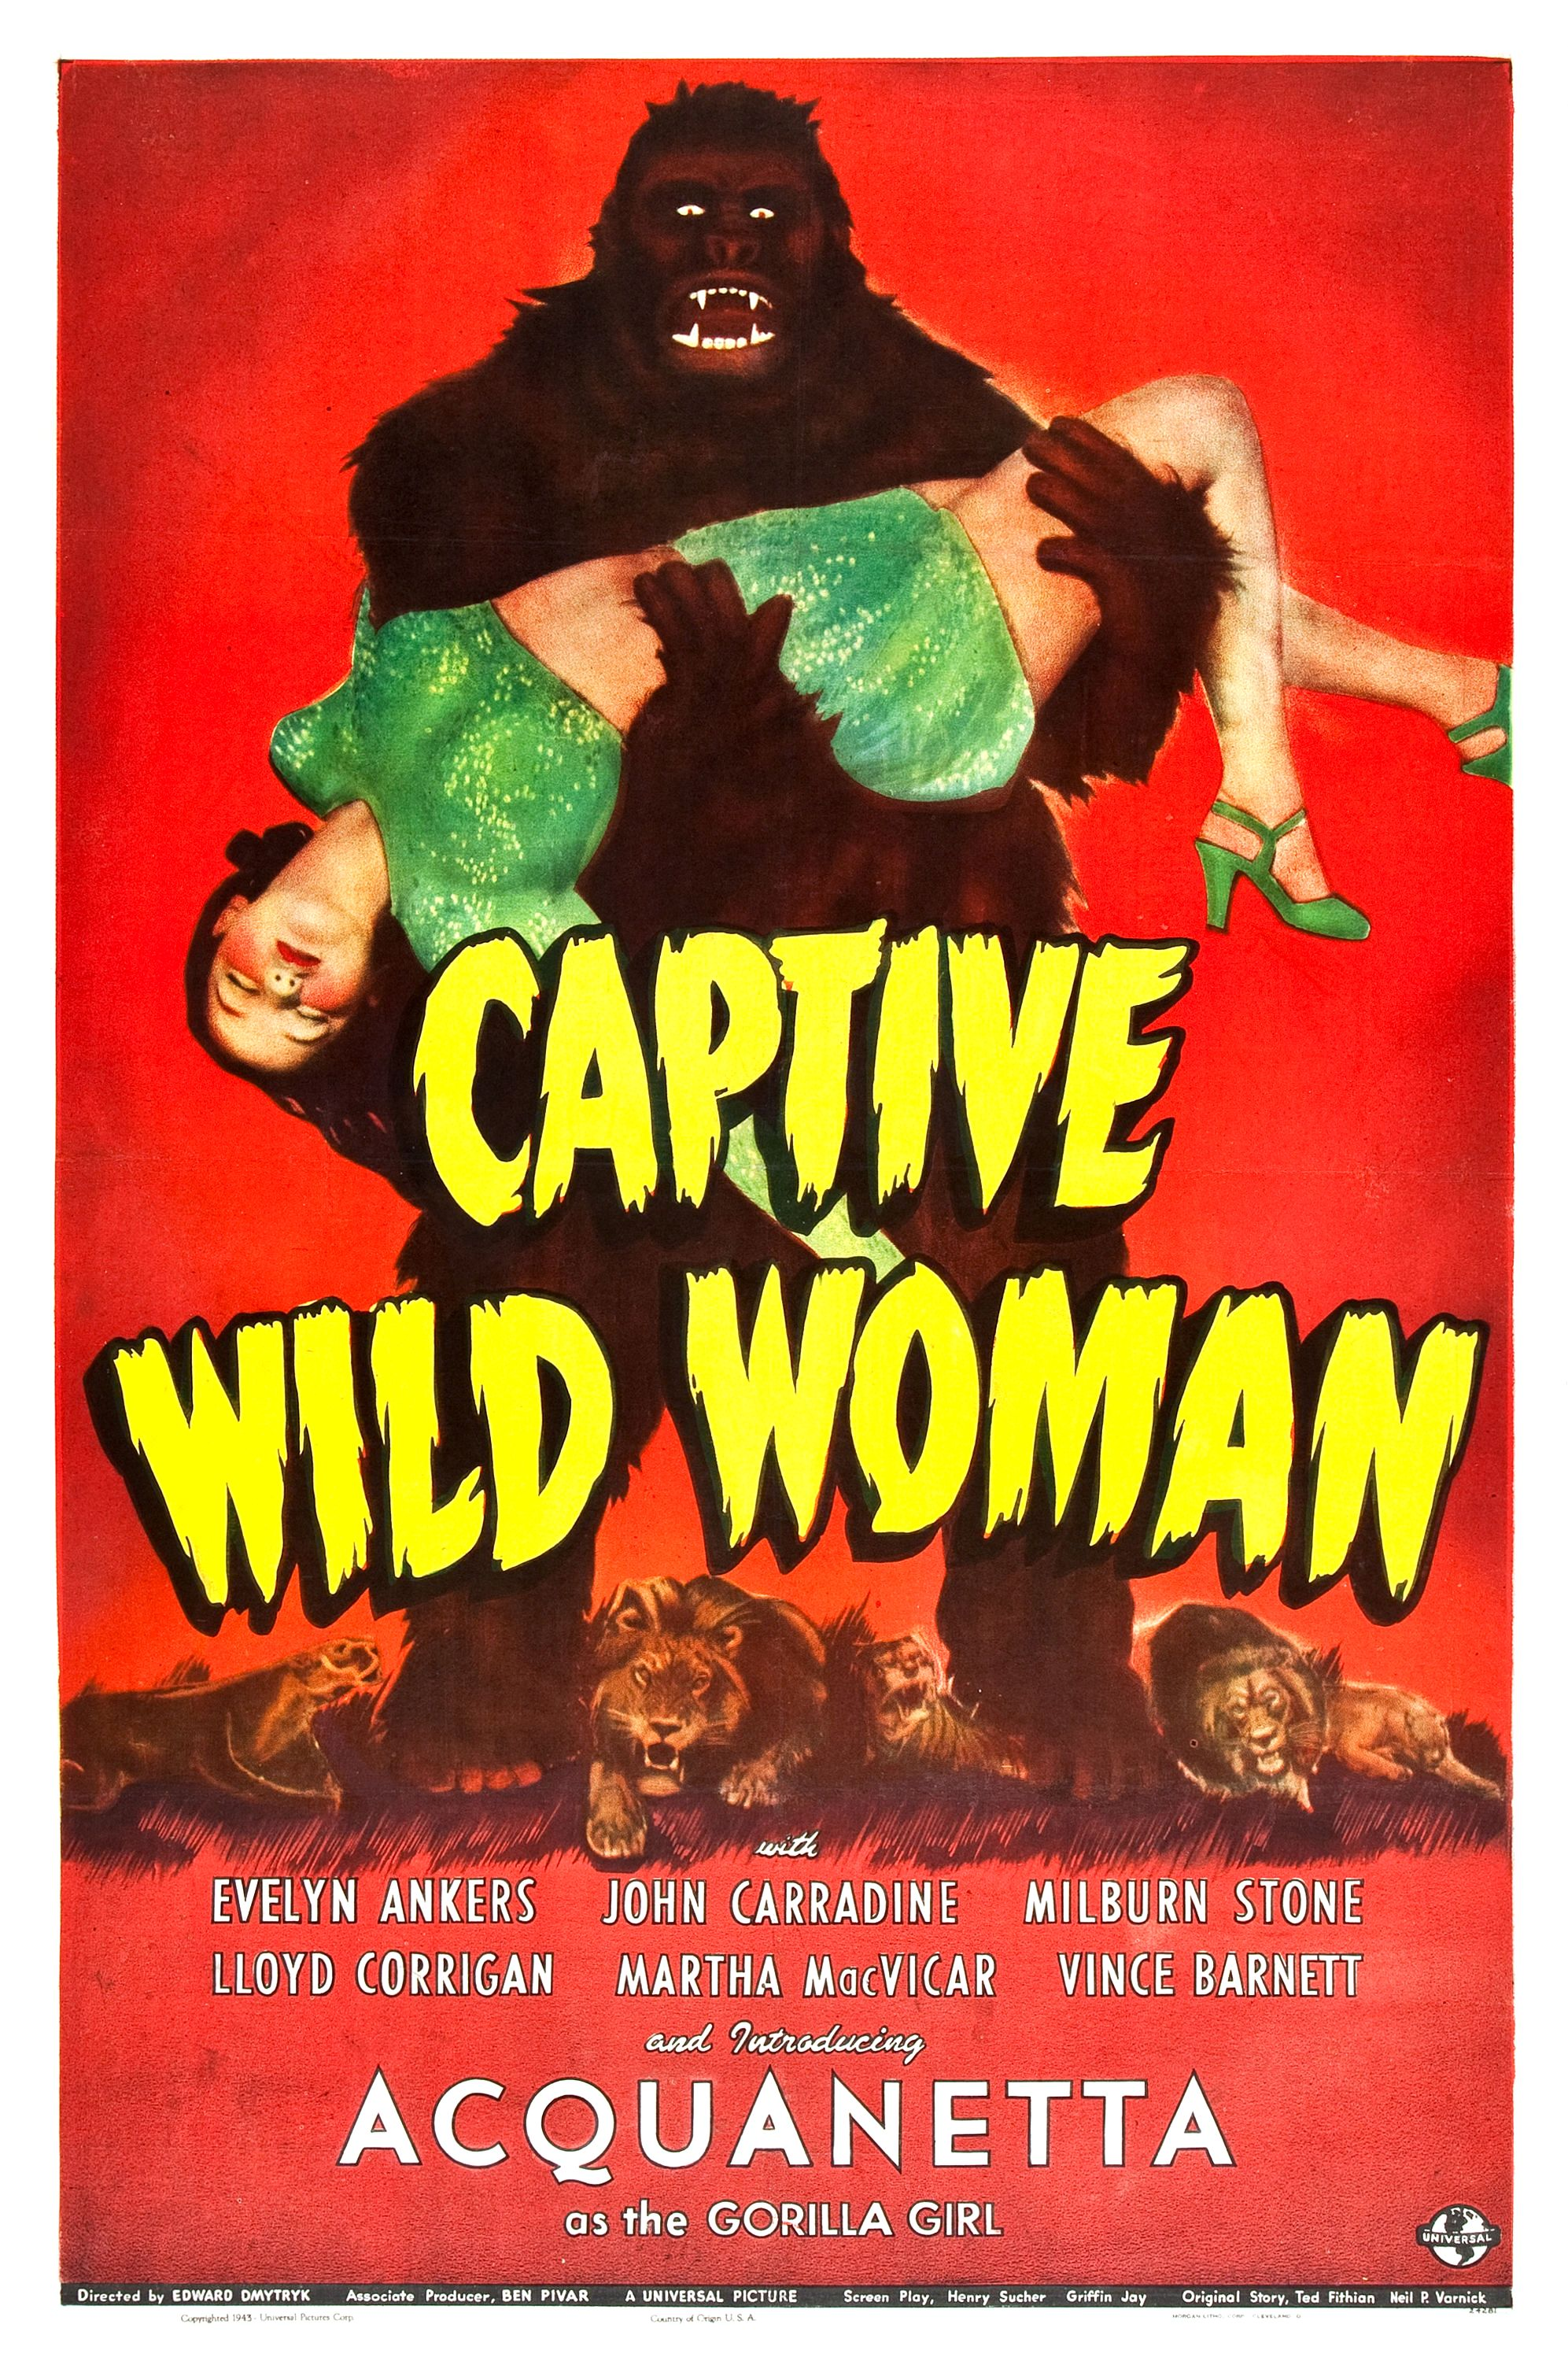 Captive Wild Woman hd on soap2day